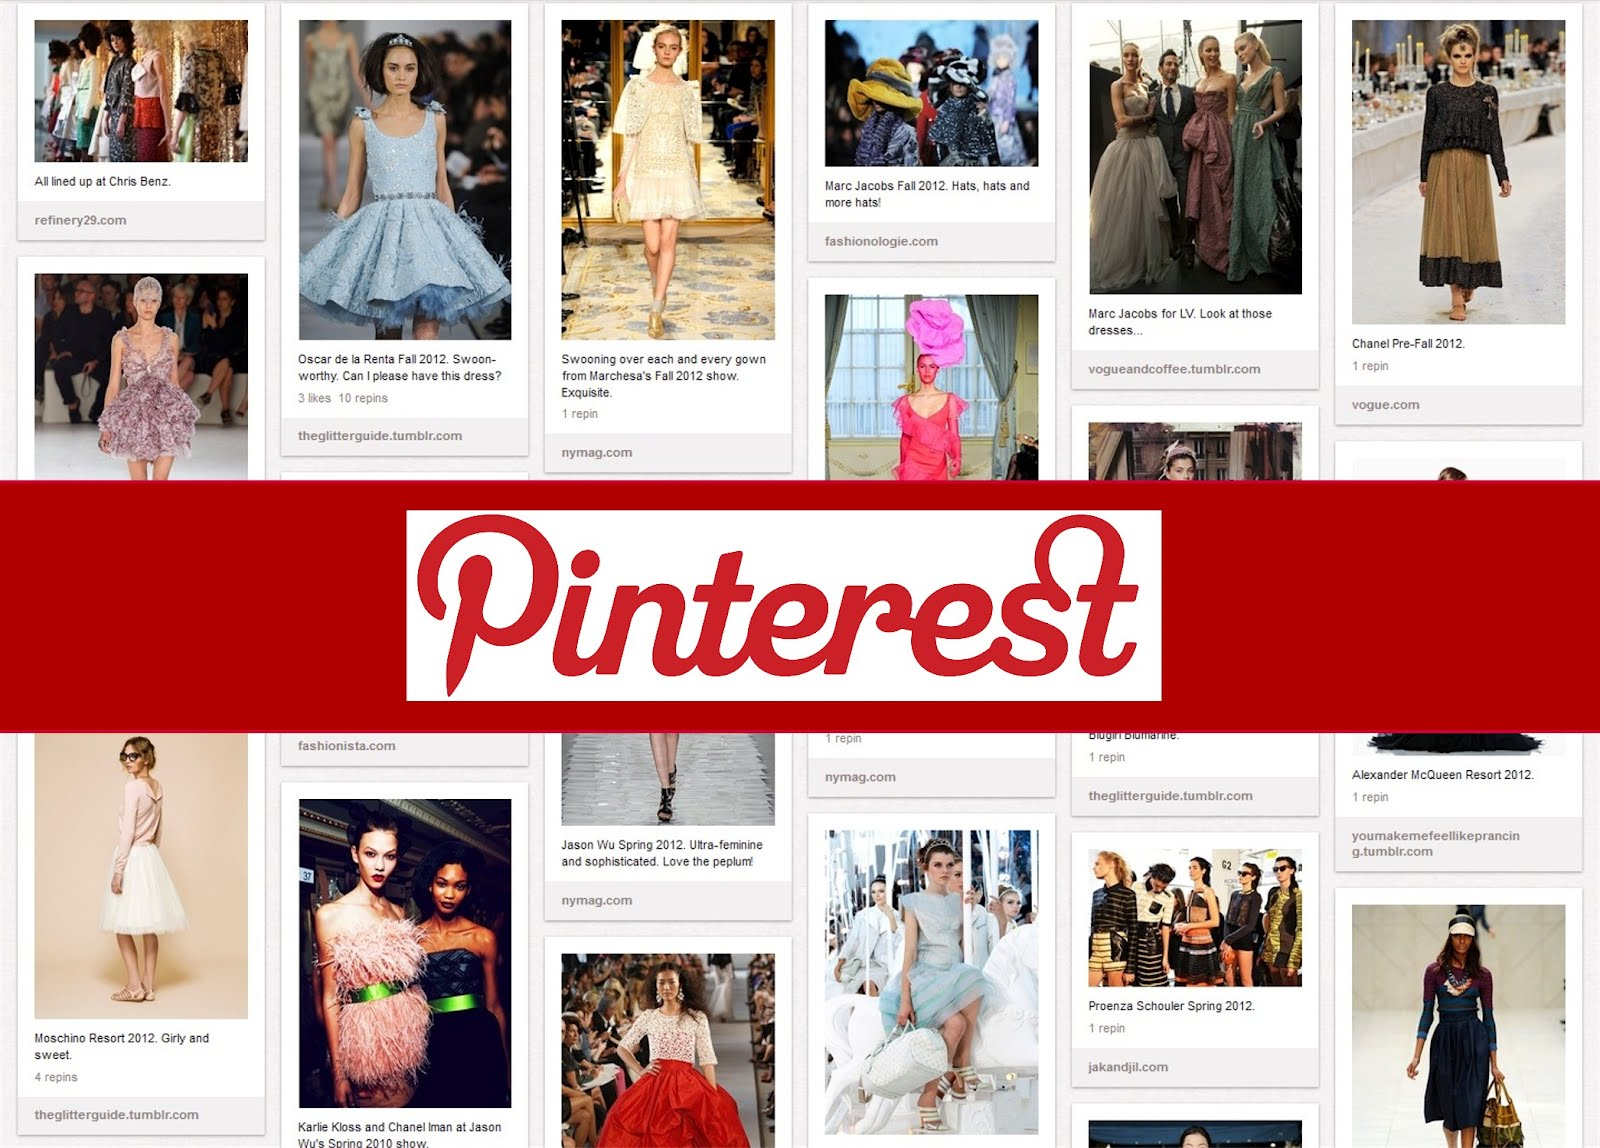 10 Fashion & Beauty Pinterest Accounts to Follow | College Gloss